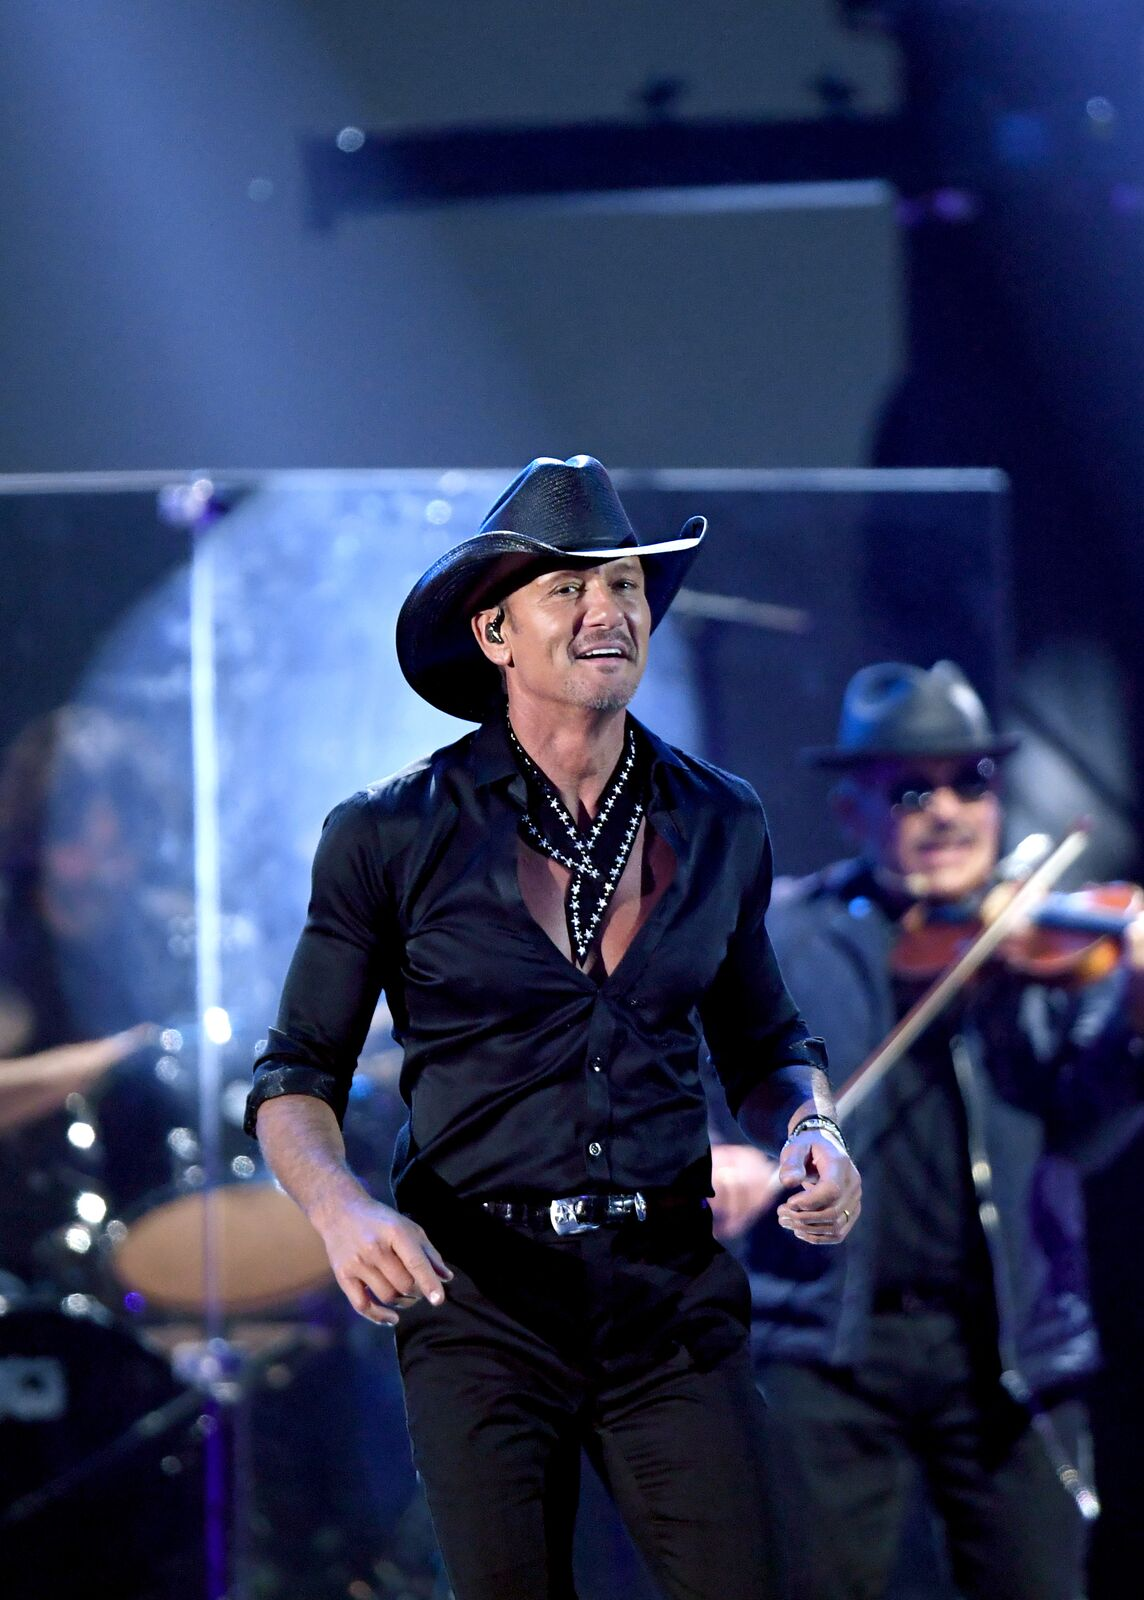 Tim McGraw onstage during the iHeartRadio Music Festival at T-Mobile Arena on September 20, 2019, in Las Vegas, Nevada | Photo: Ethan Miller/Getty Images